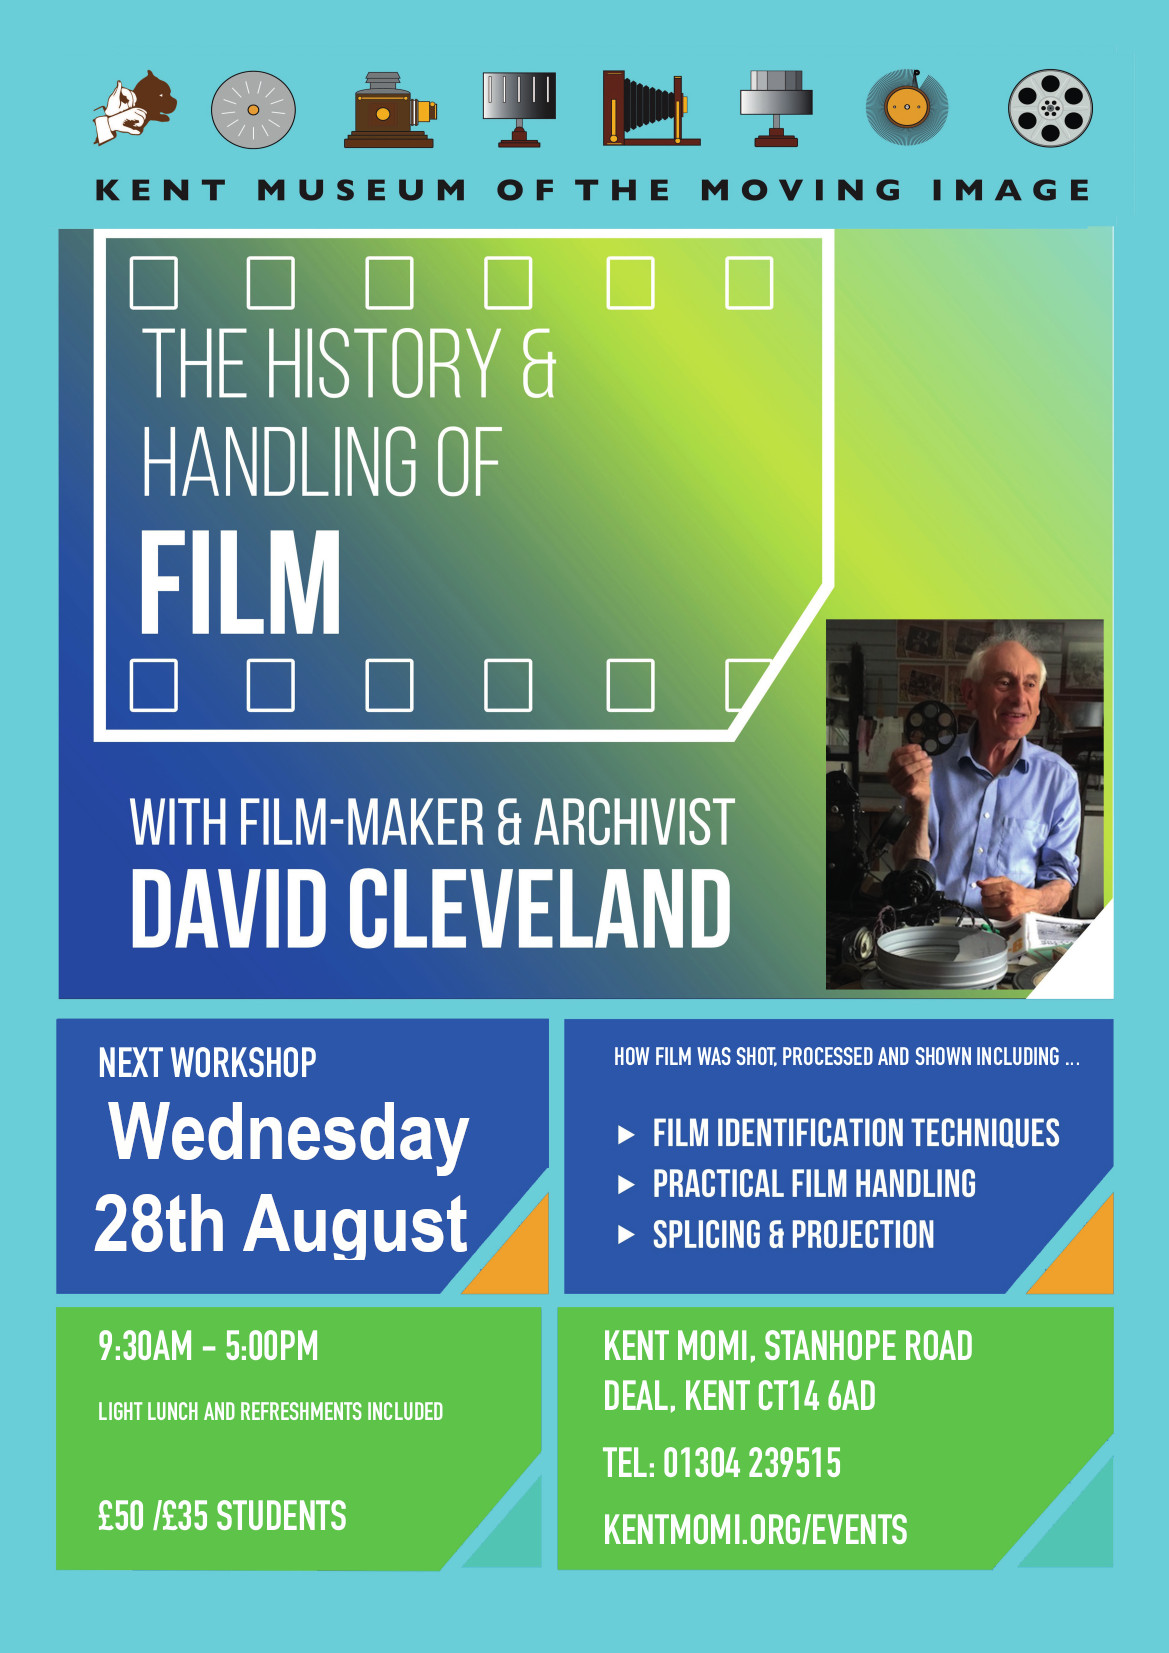 DAVIDCLEVLAND_POSTER_August_2019.jpg